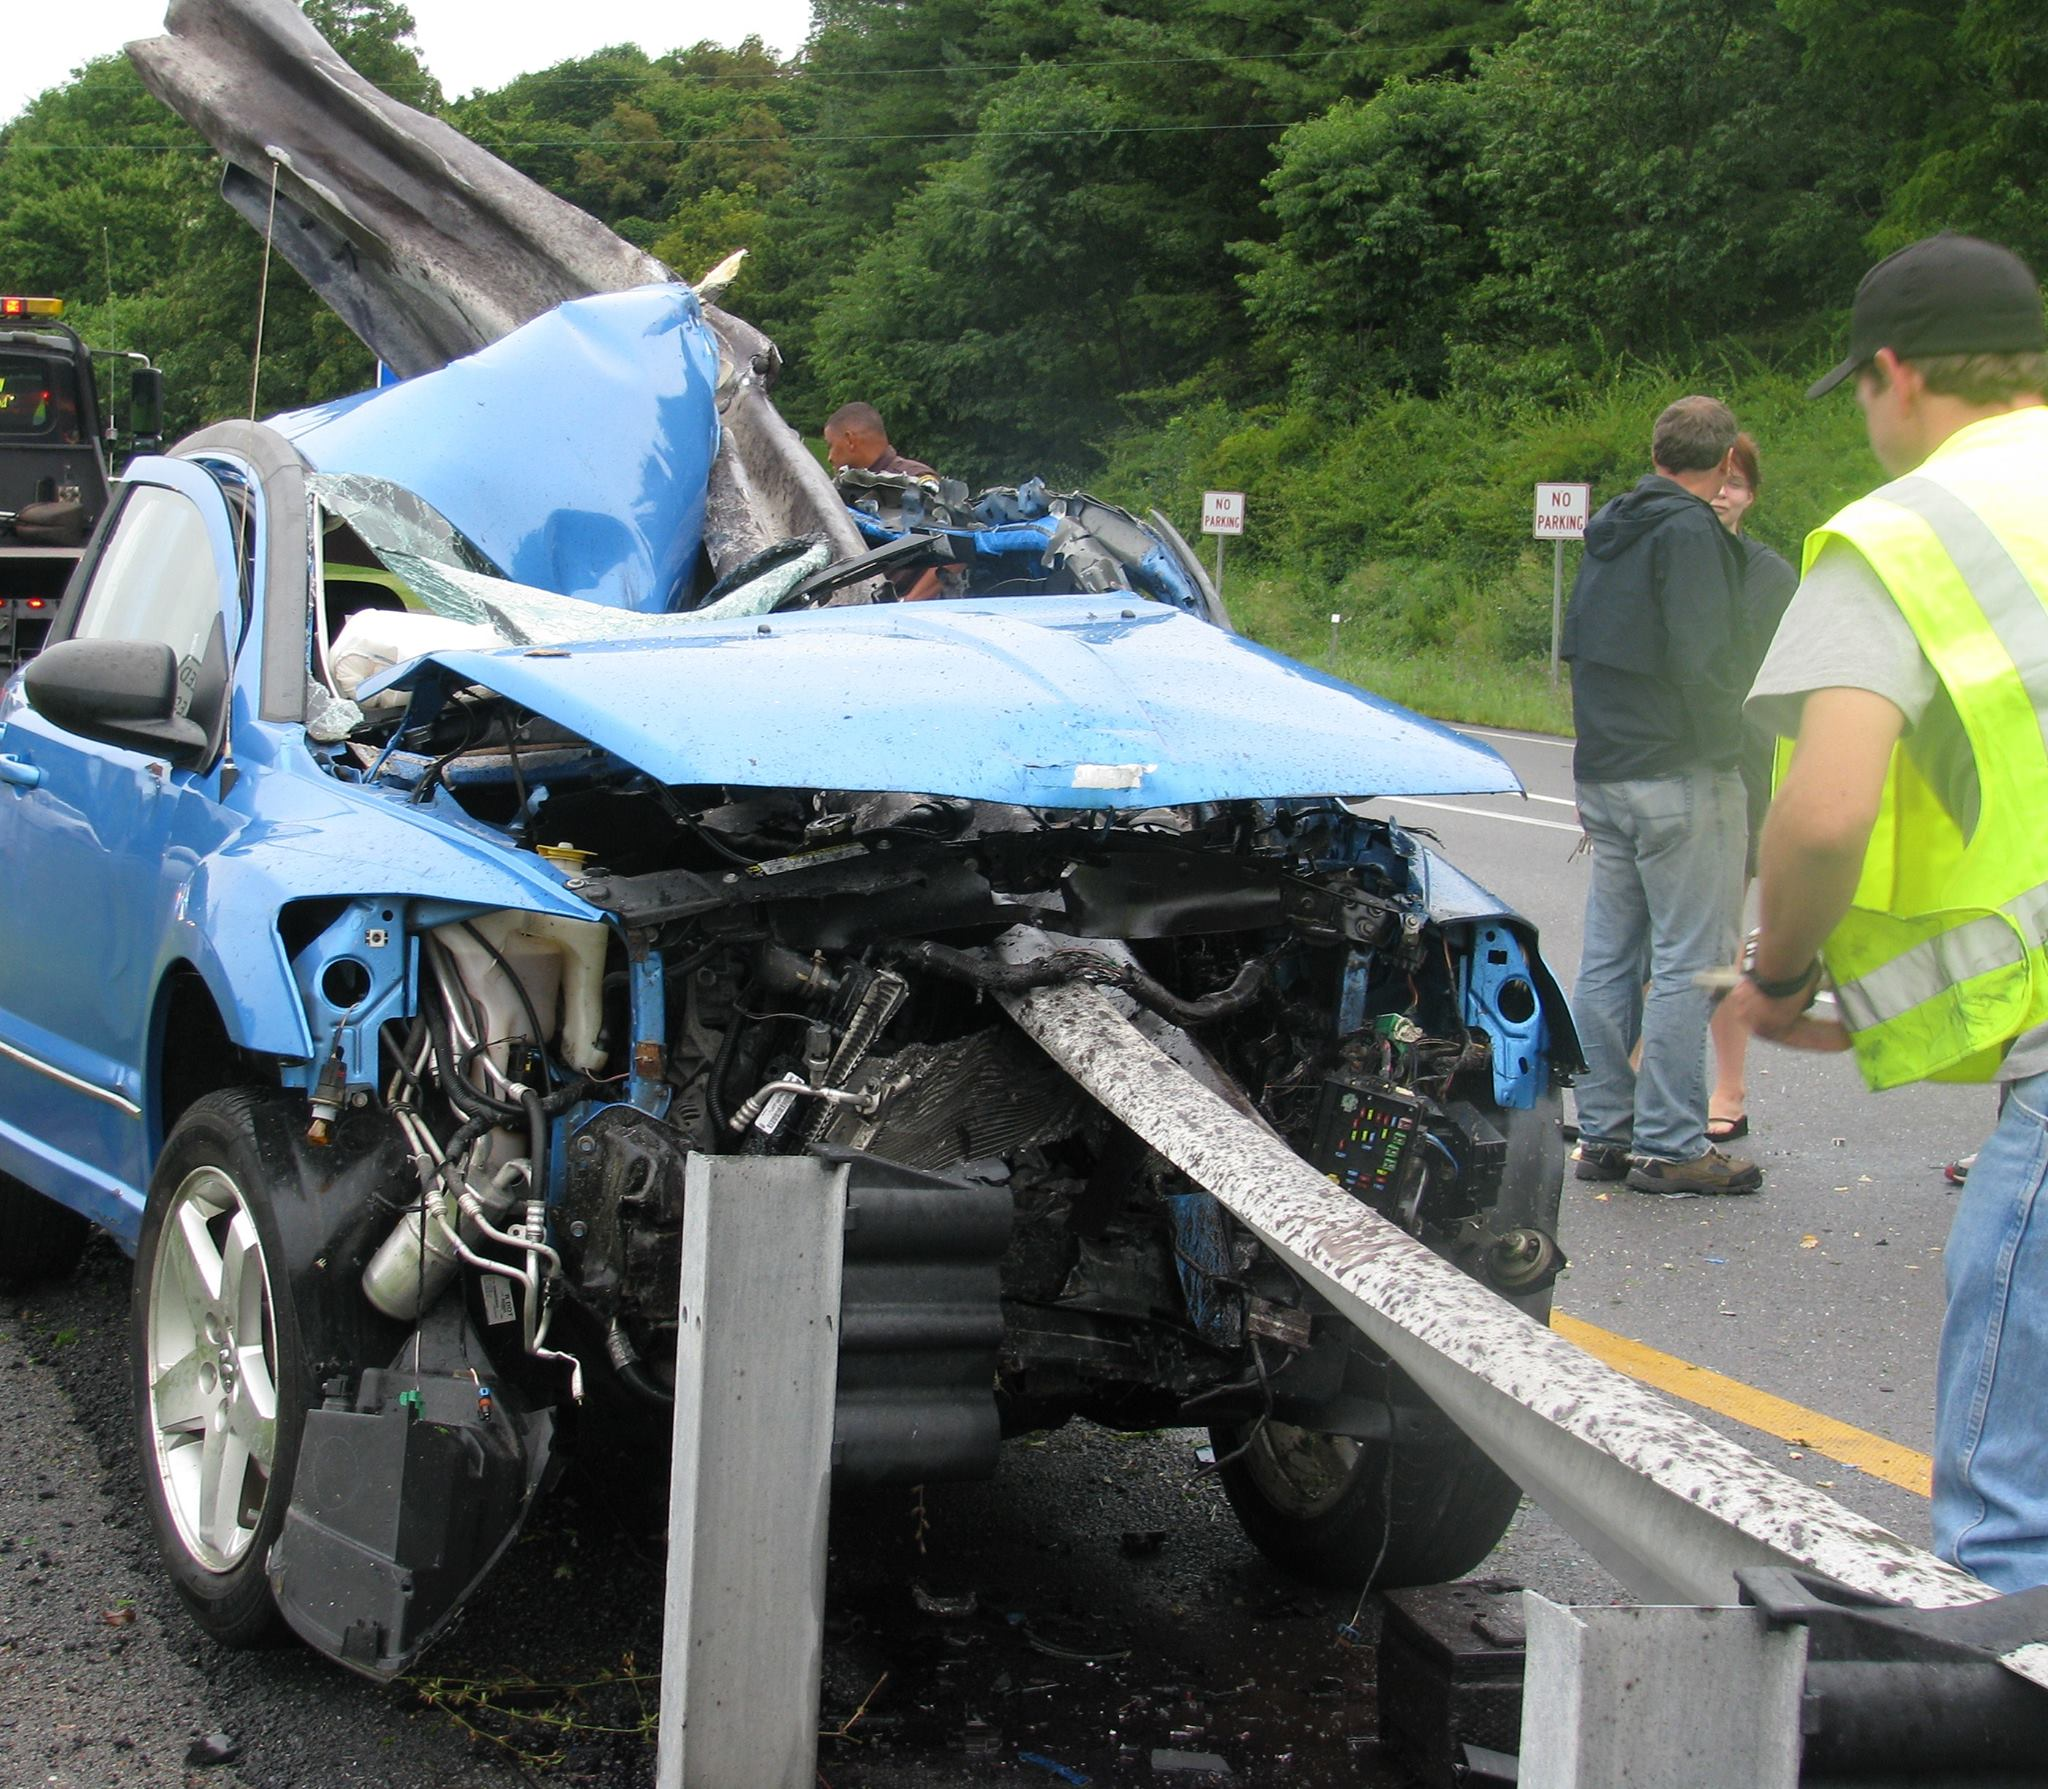 Virginia Man's Car Skewered By Guardrail In Wreck And He Emerges Completely Unscathed